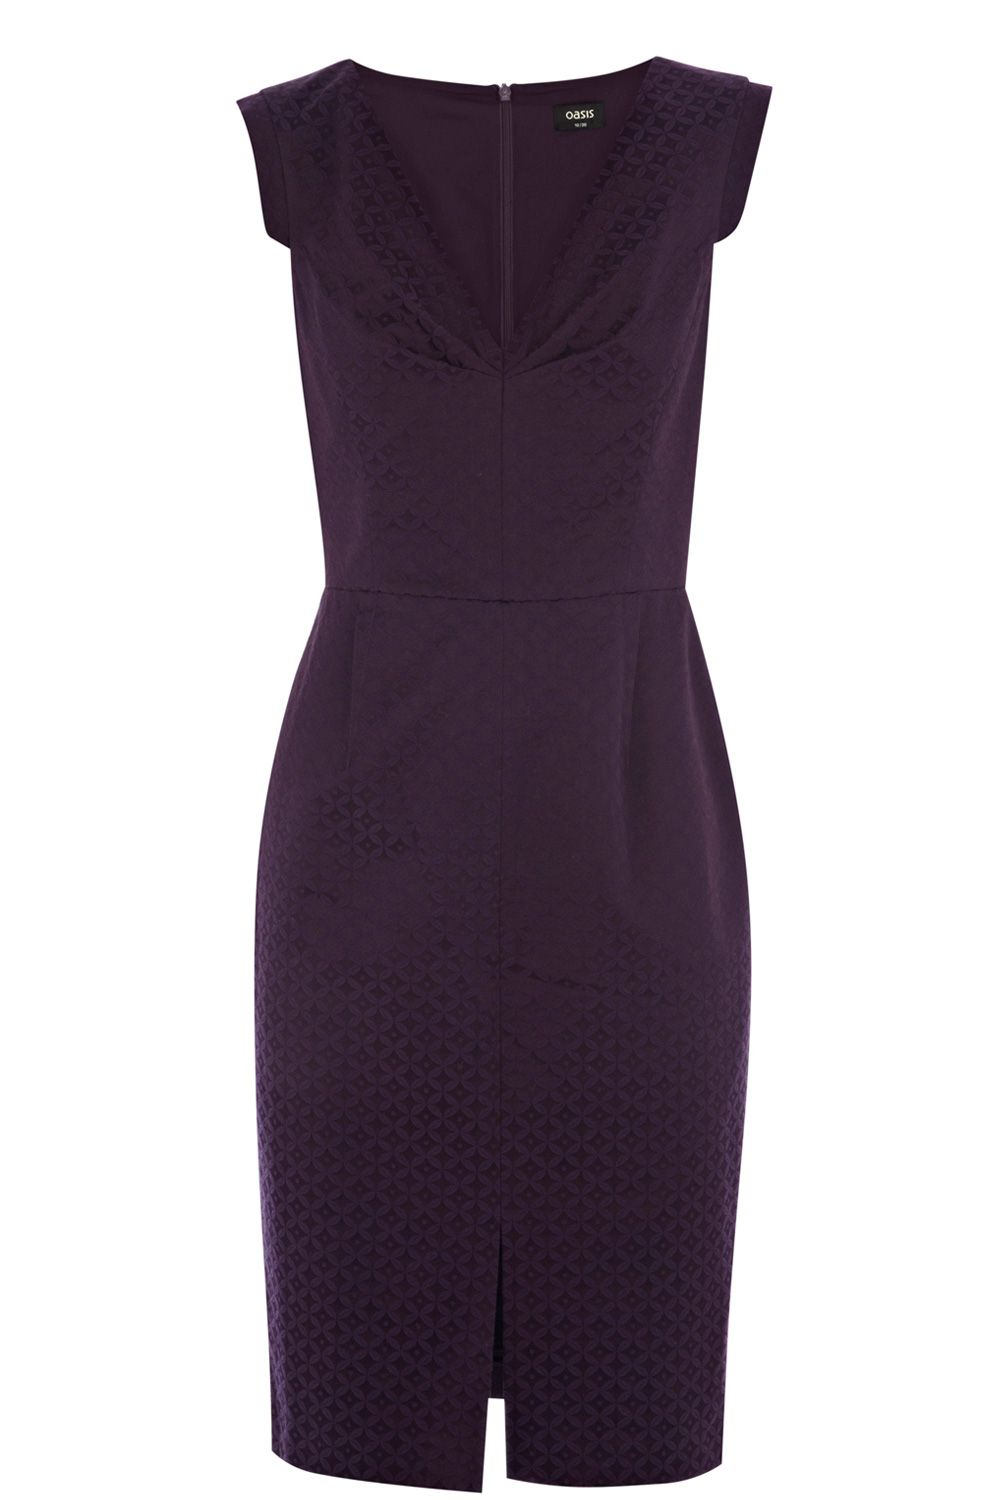 Rosa jacquard pencil dress